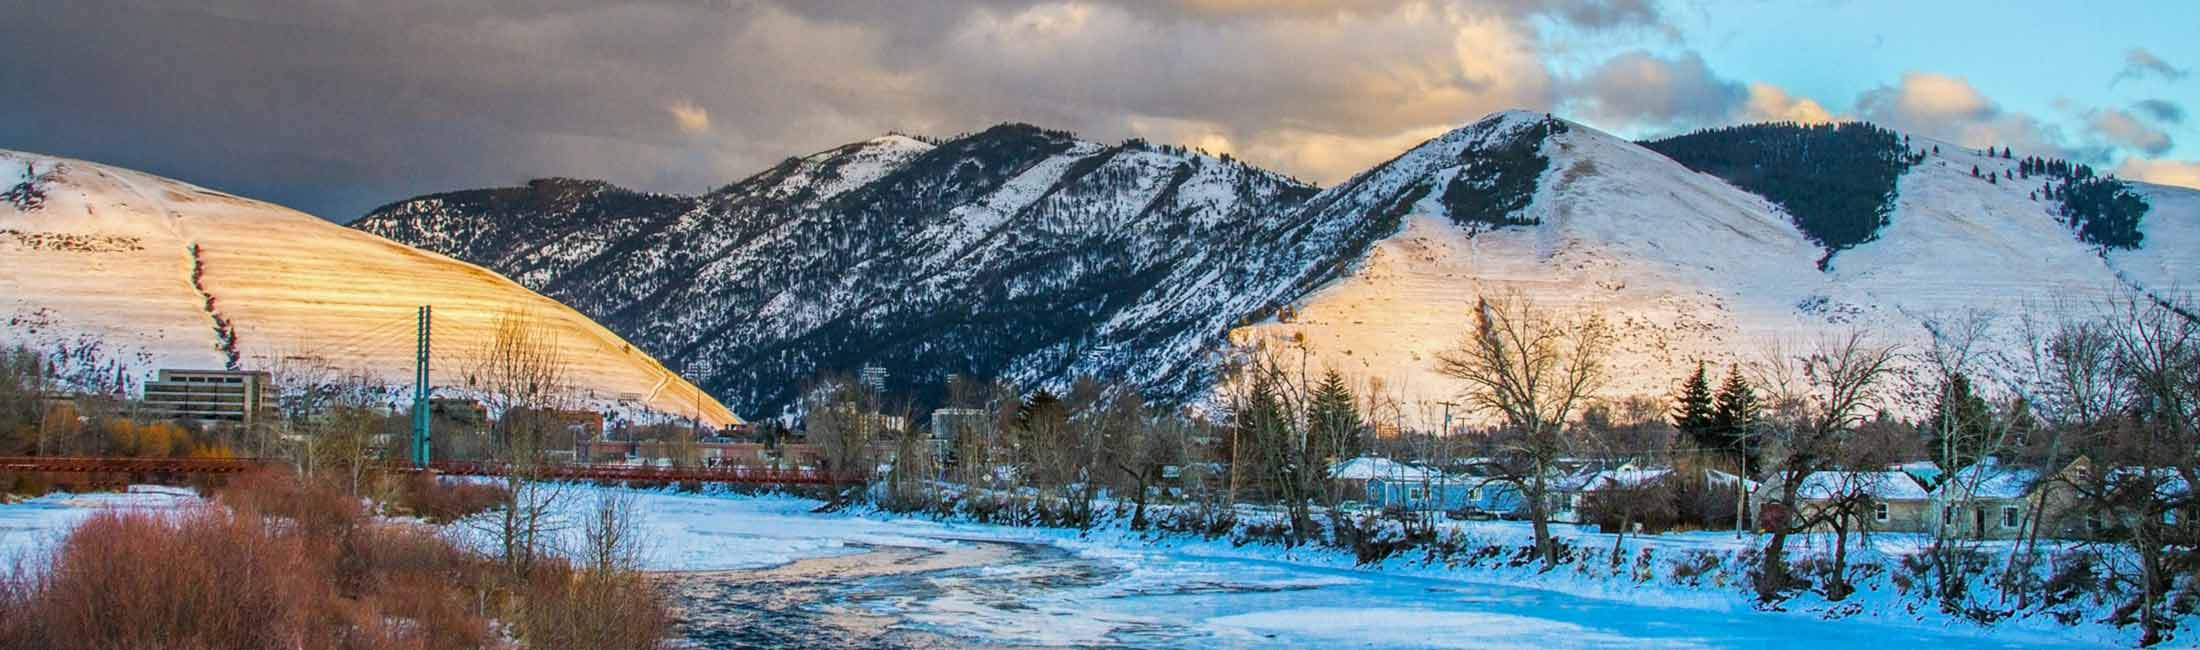 5 Ways to Have a Wonderful Winter in Missoula